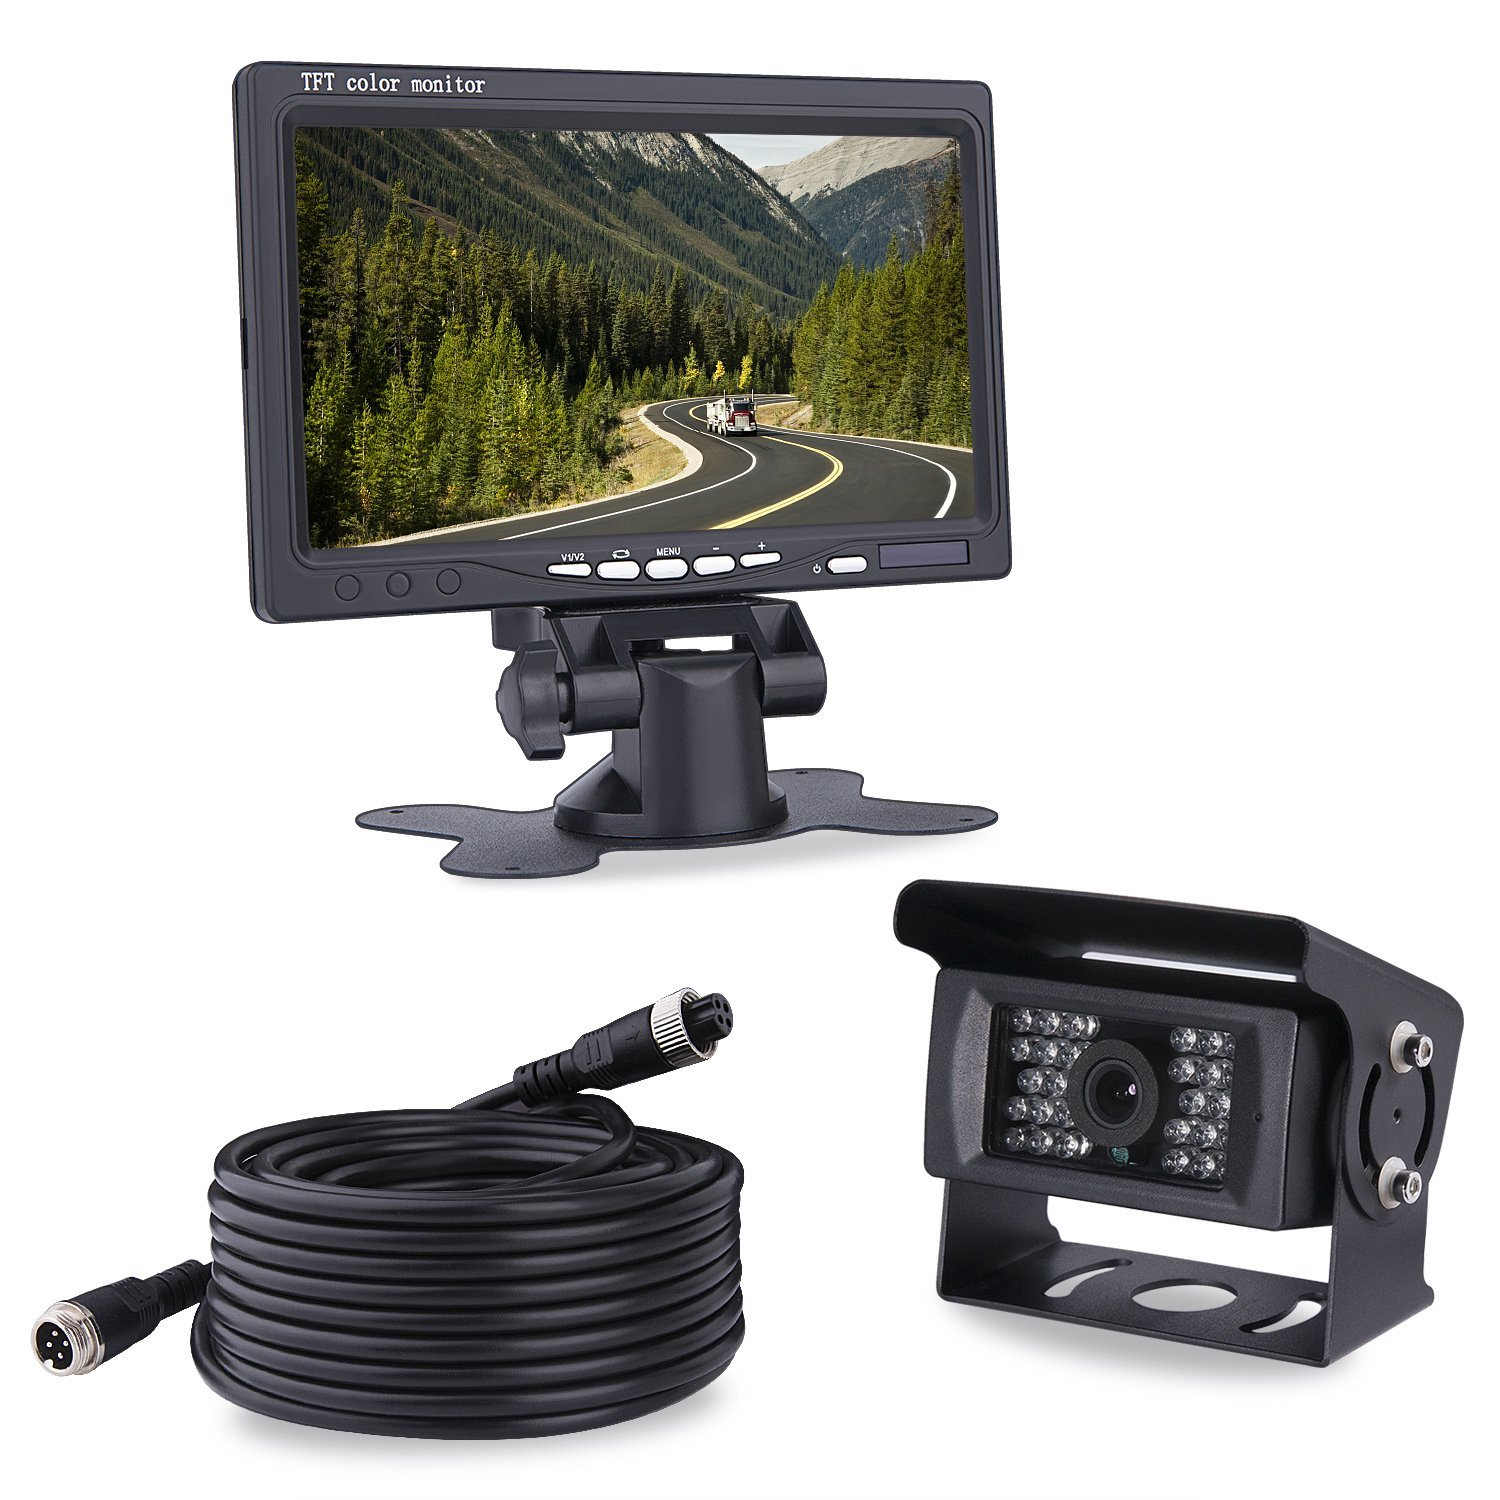 Car Backup Camera RV 7 Monitor Quad-View Split Screen Backup Camera System Monitor Kit Bus Motor Home and 5th Wheels Shockproof, 4 Pins Connector Backup Camera for Truck Trailer